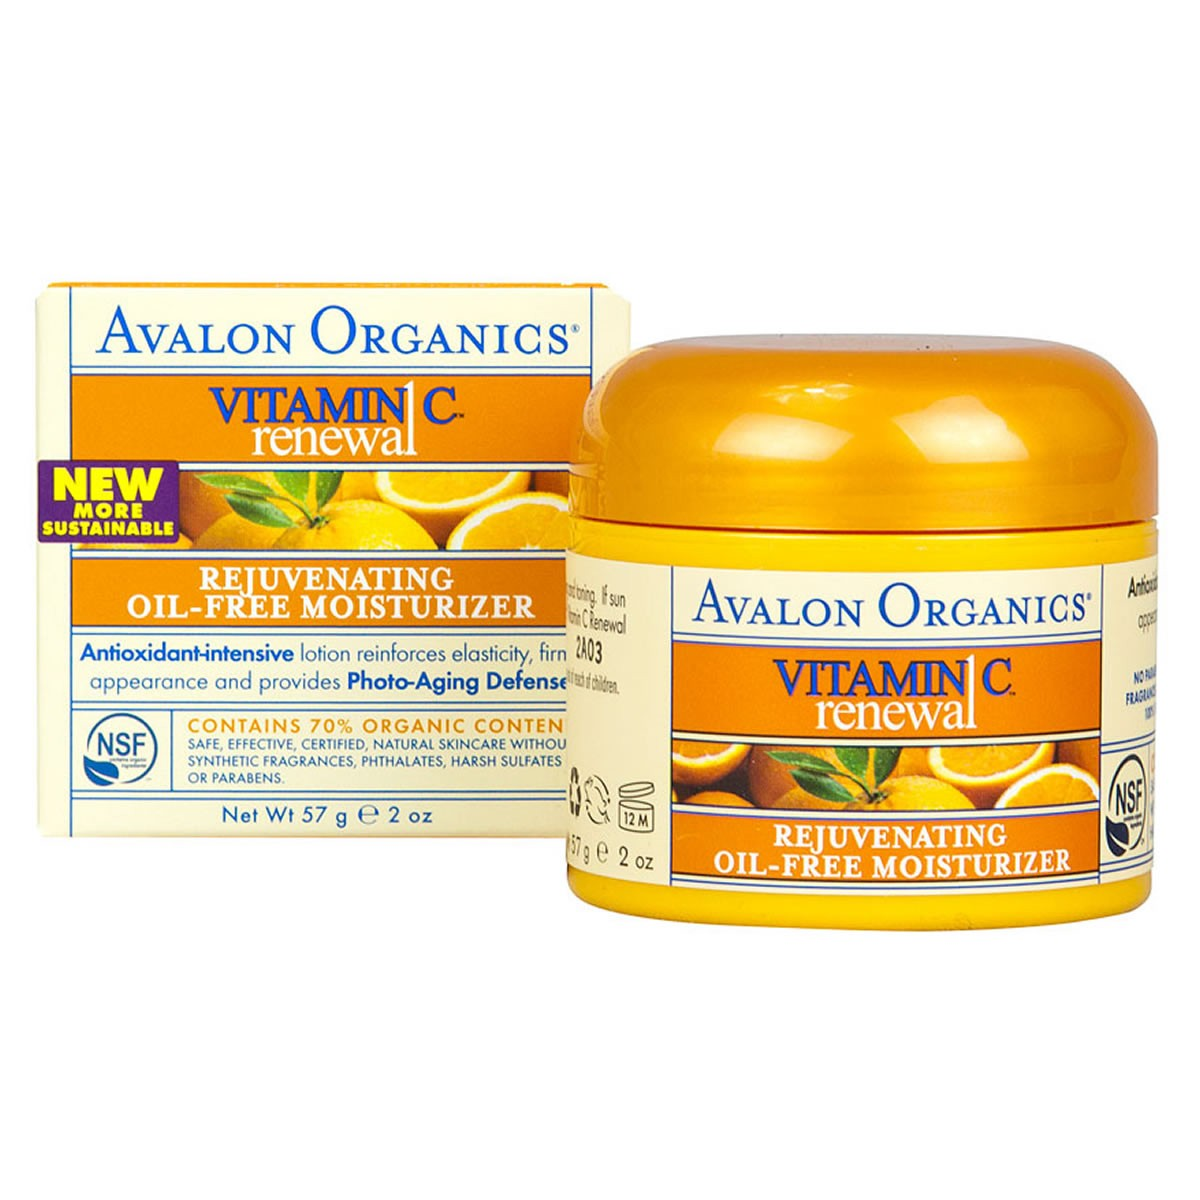 Avalon Organics Vitamin C Rejuvenating Oil-Free Moisturiser